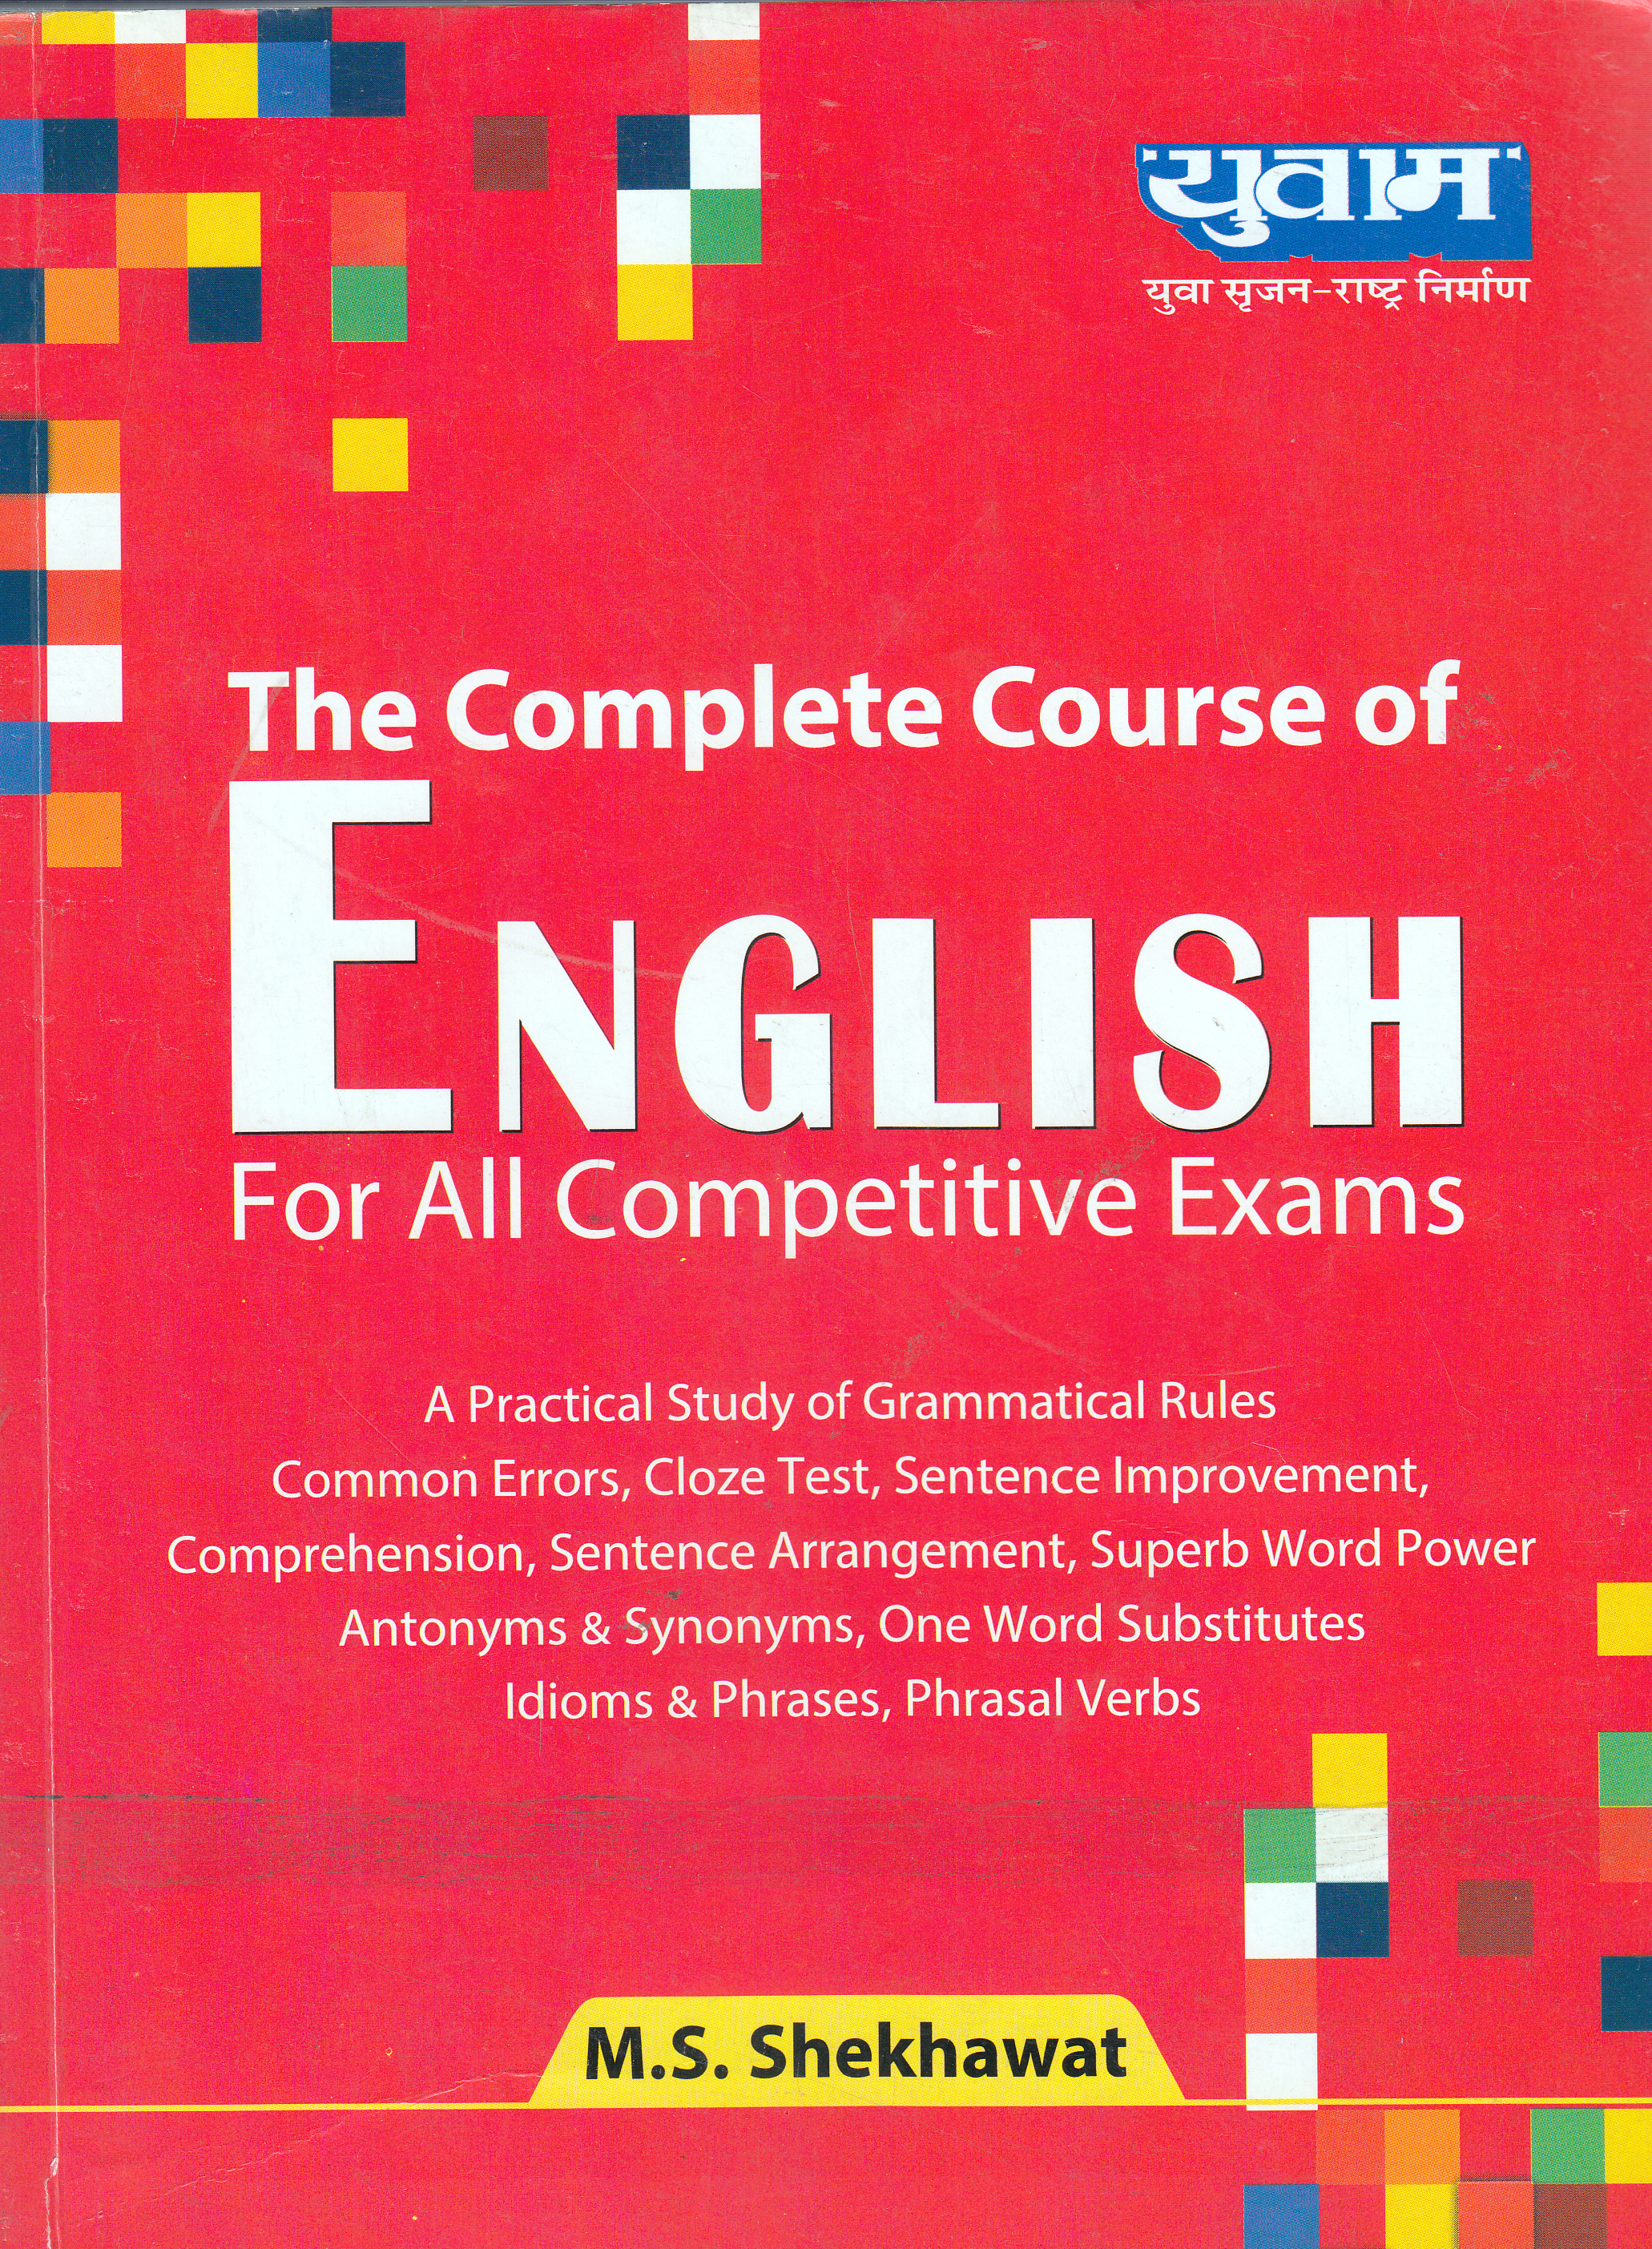 ENGLISH GRAMMER (For All Competitive Exams)